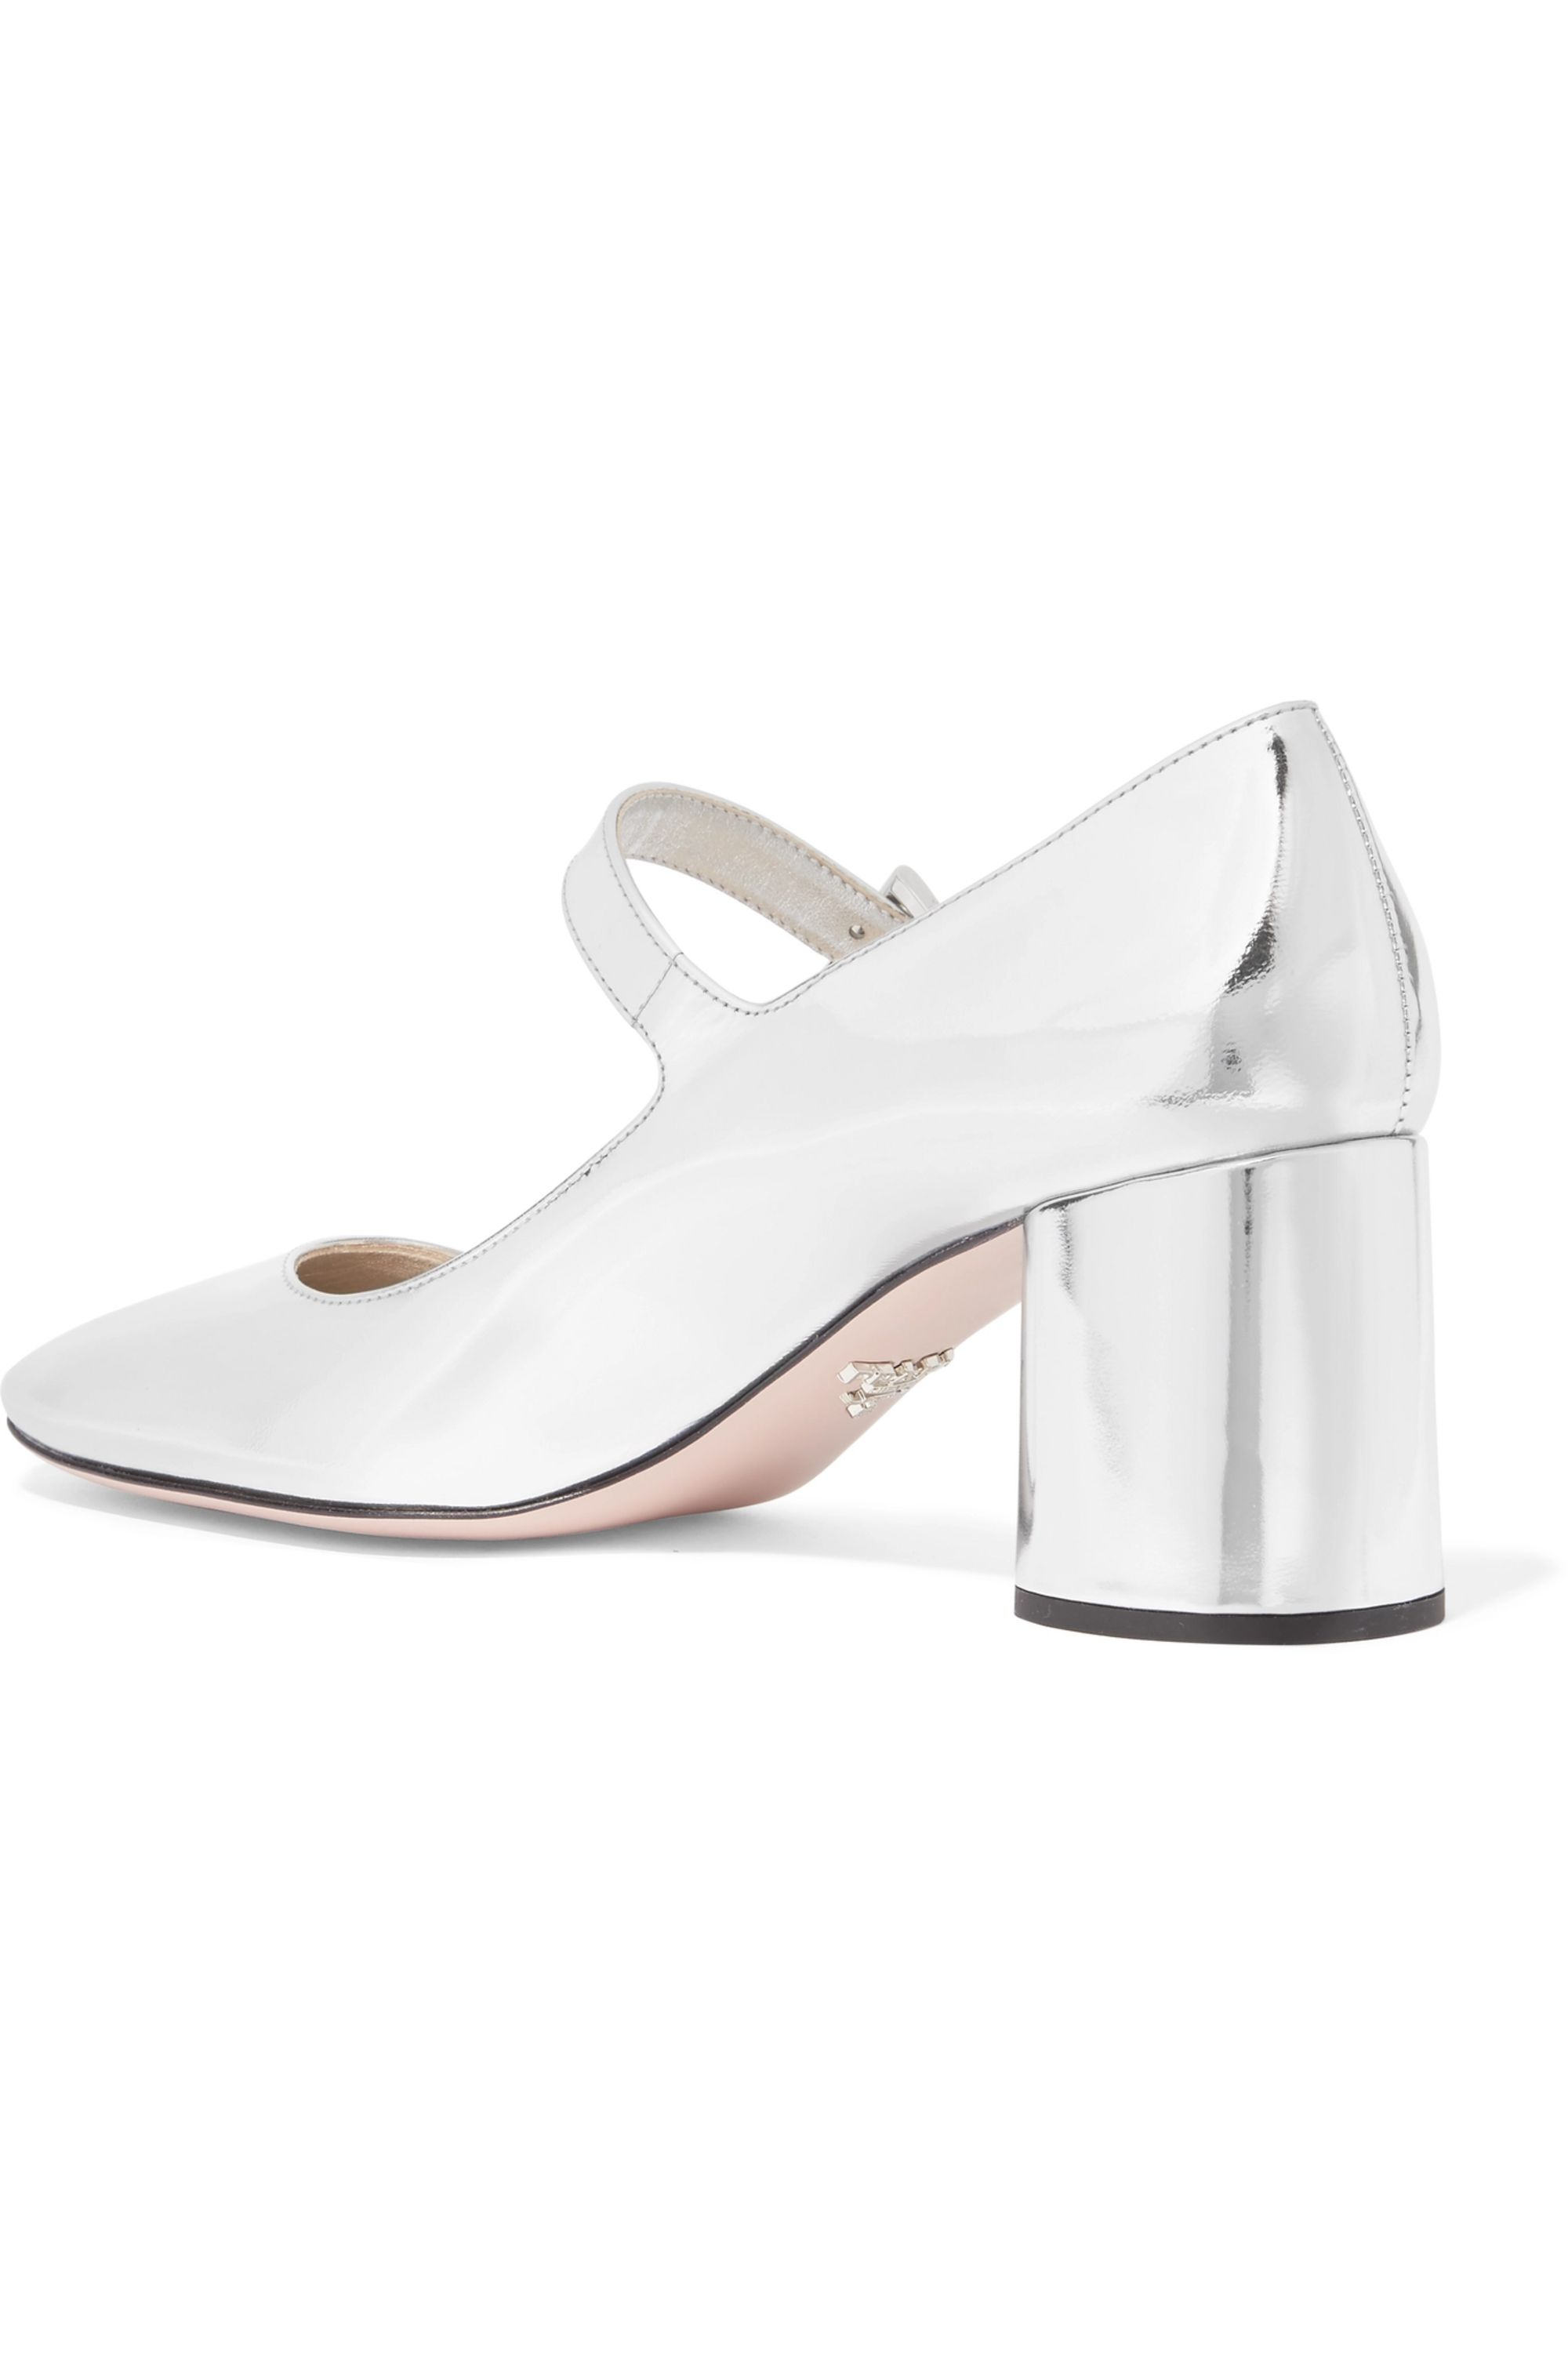 Prada Metallic leather Mary Jane pumps